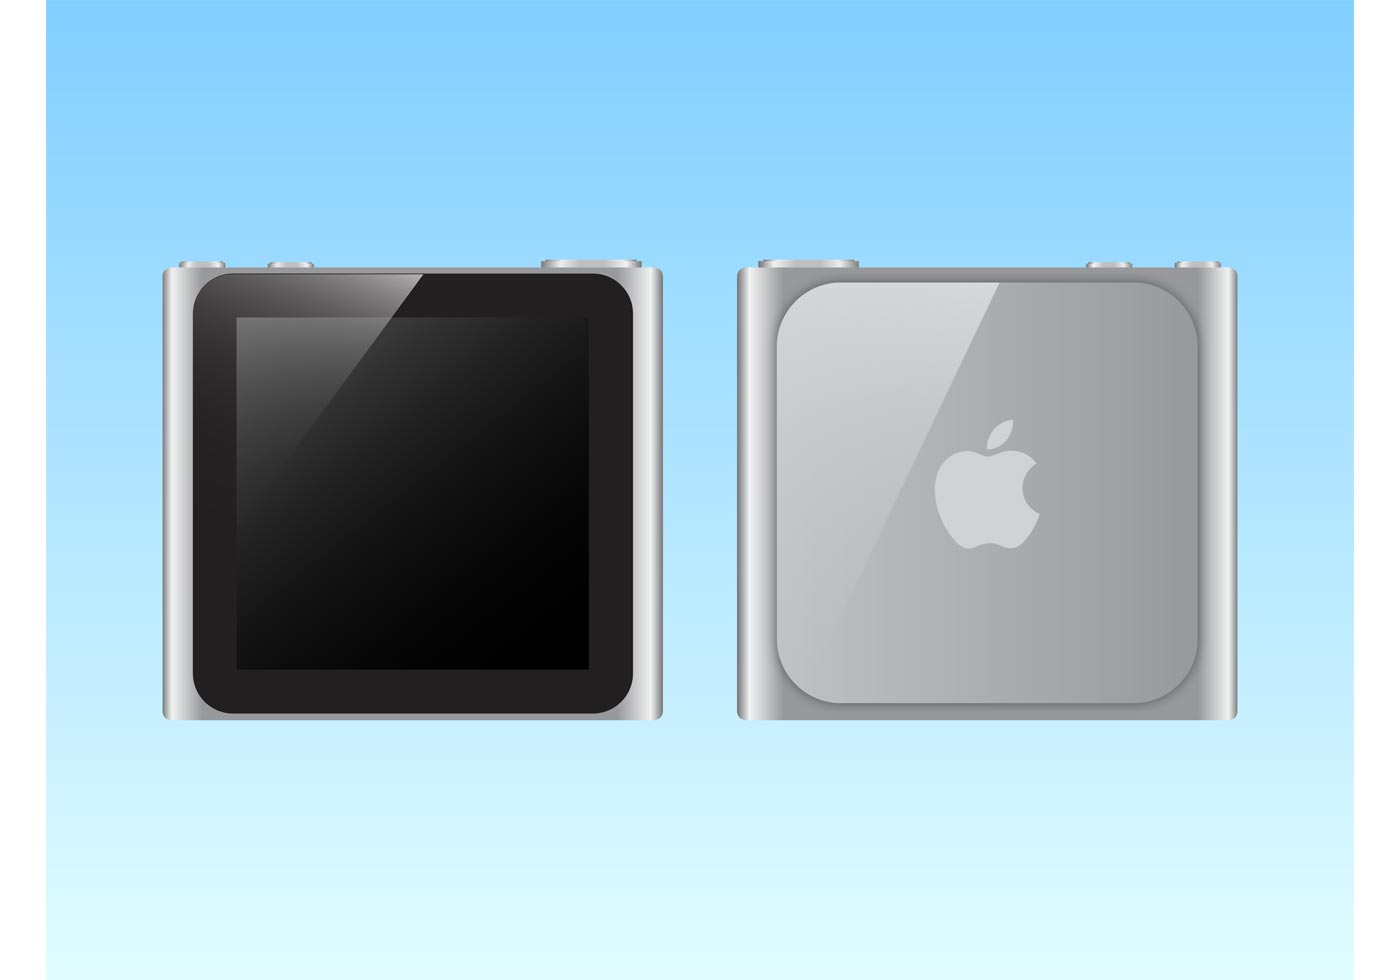 iPod Nano Silver - Download Free Vectors, Clipart Graphics ...